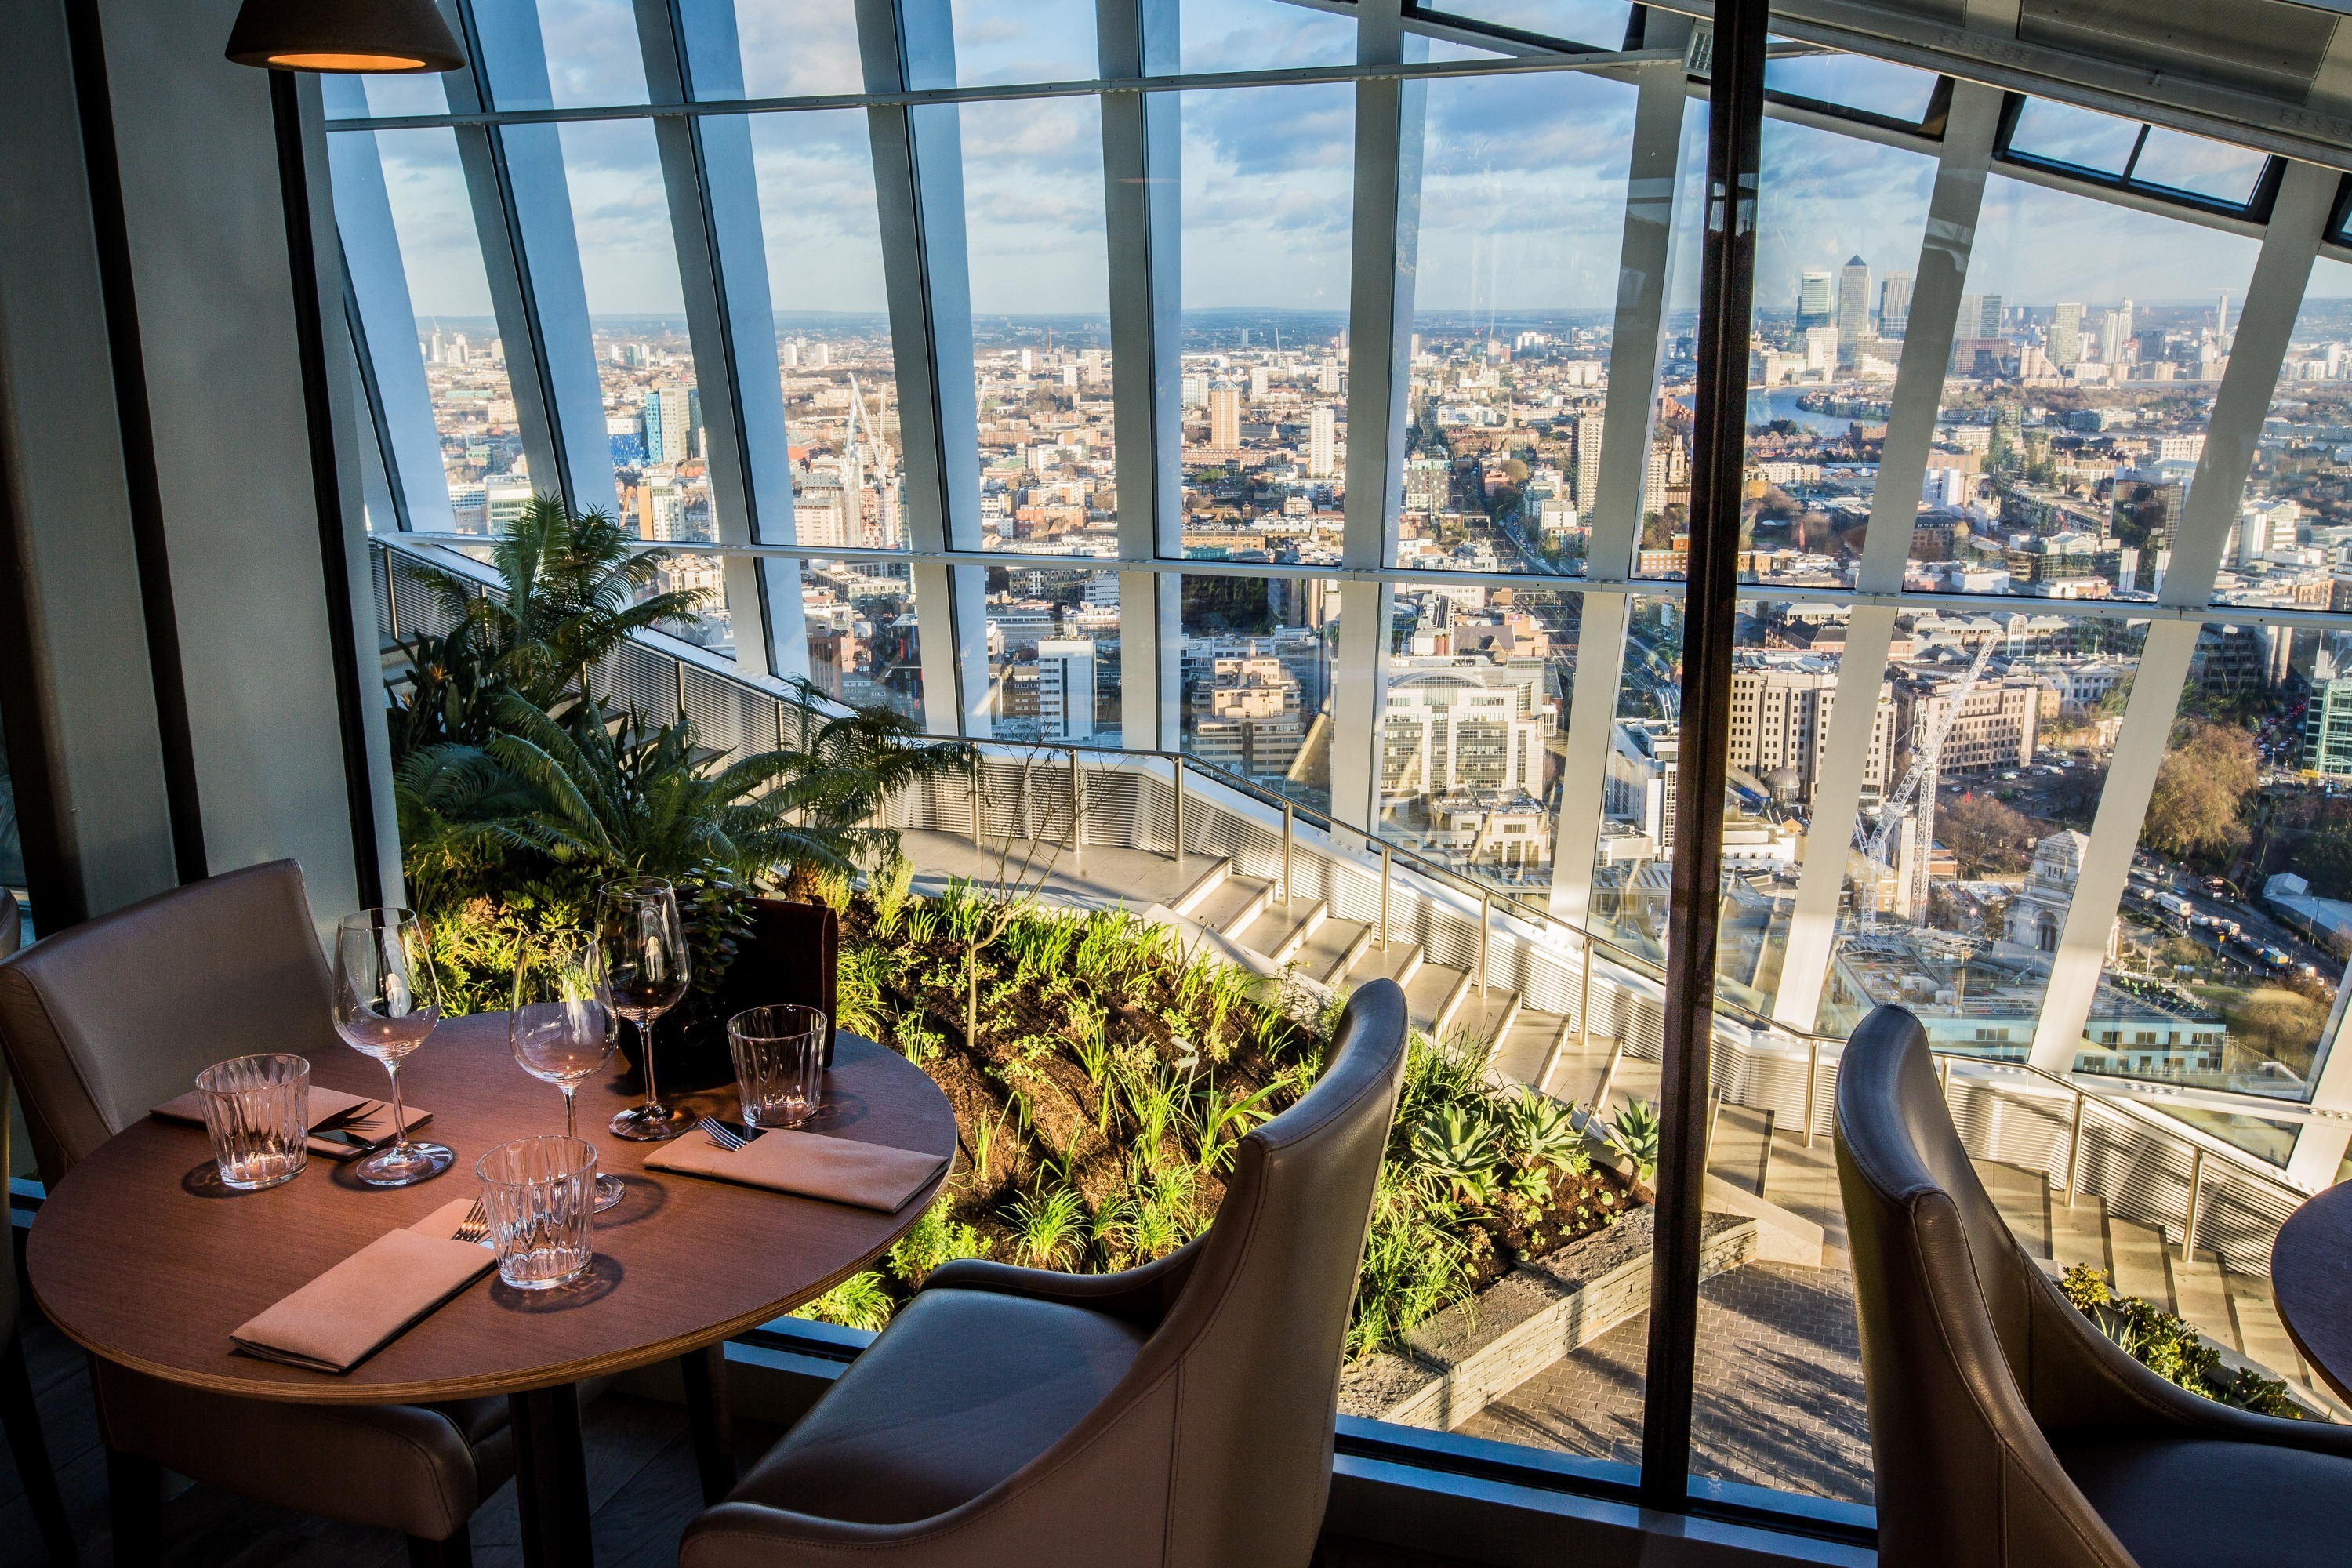 best london restaurants with a view, darwin brasserie